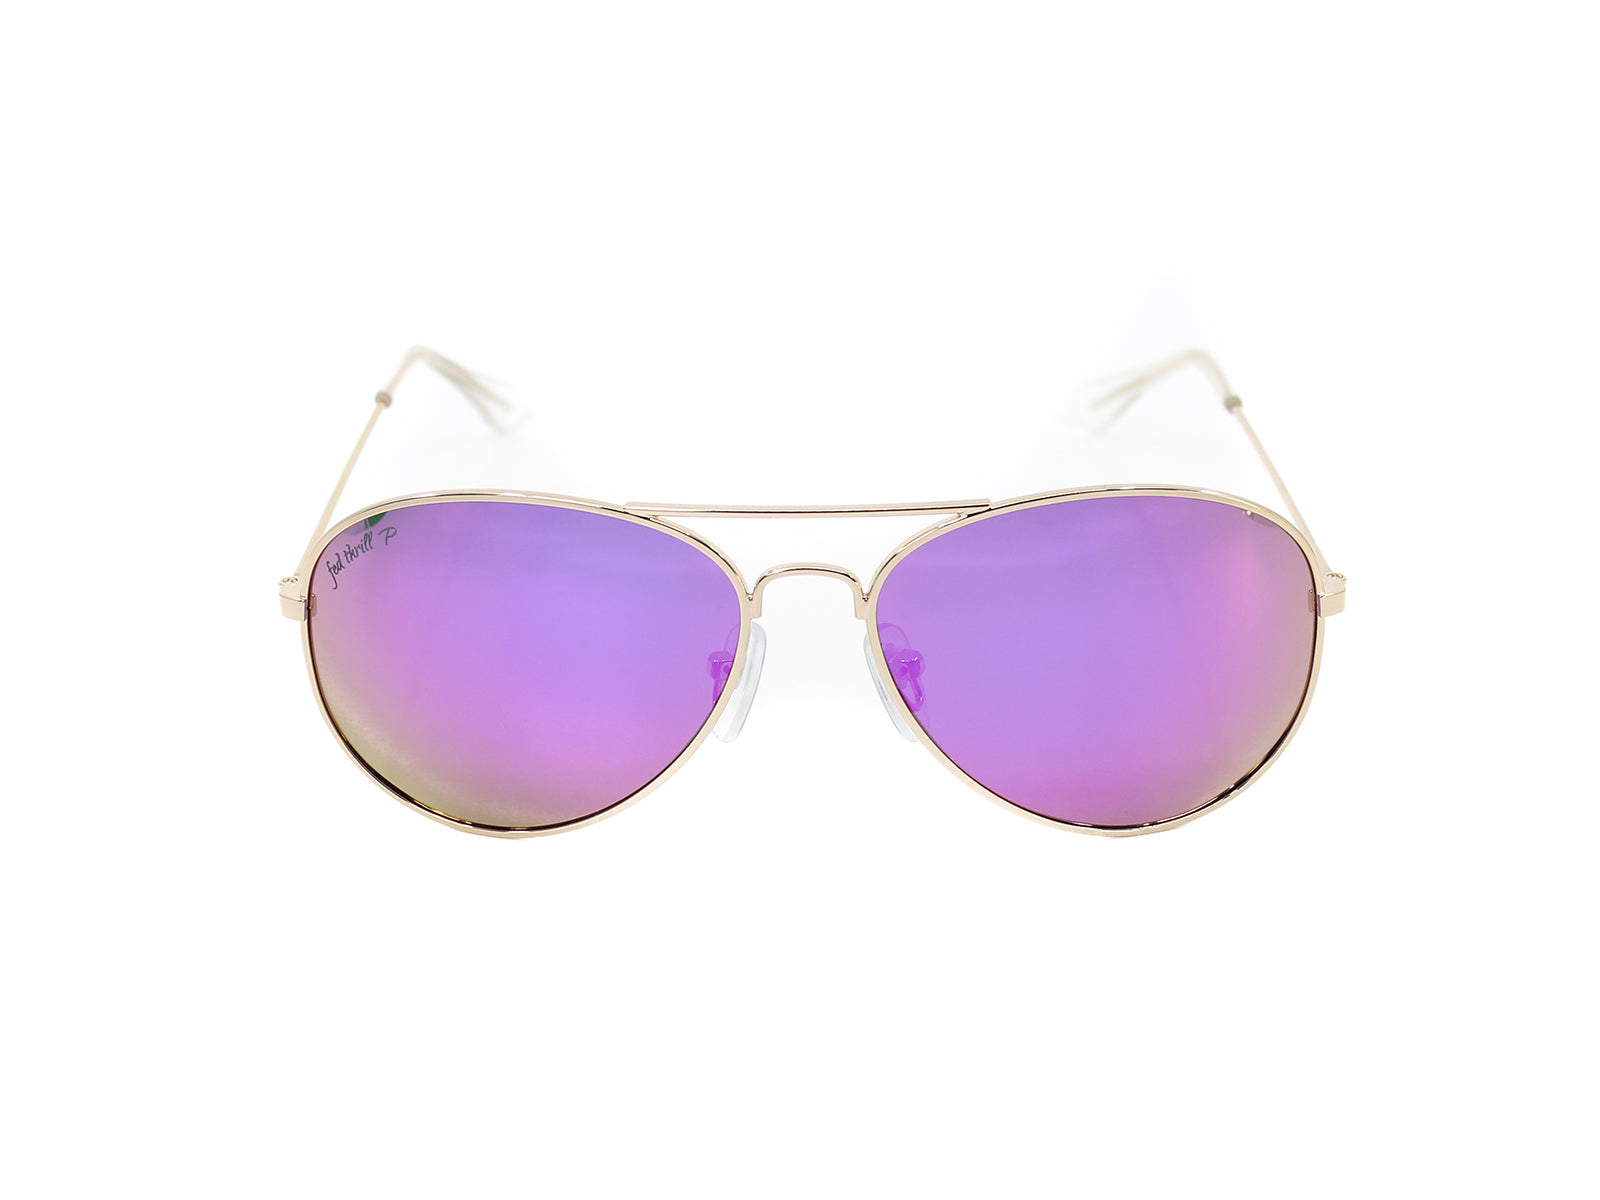 Mavericks - Twilights: Gold / Mirrored Purple Polarized